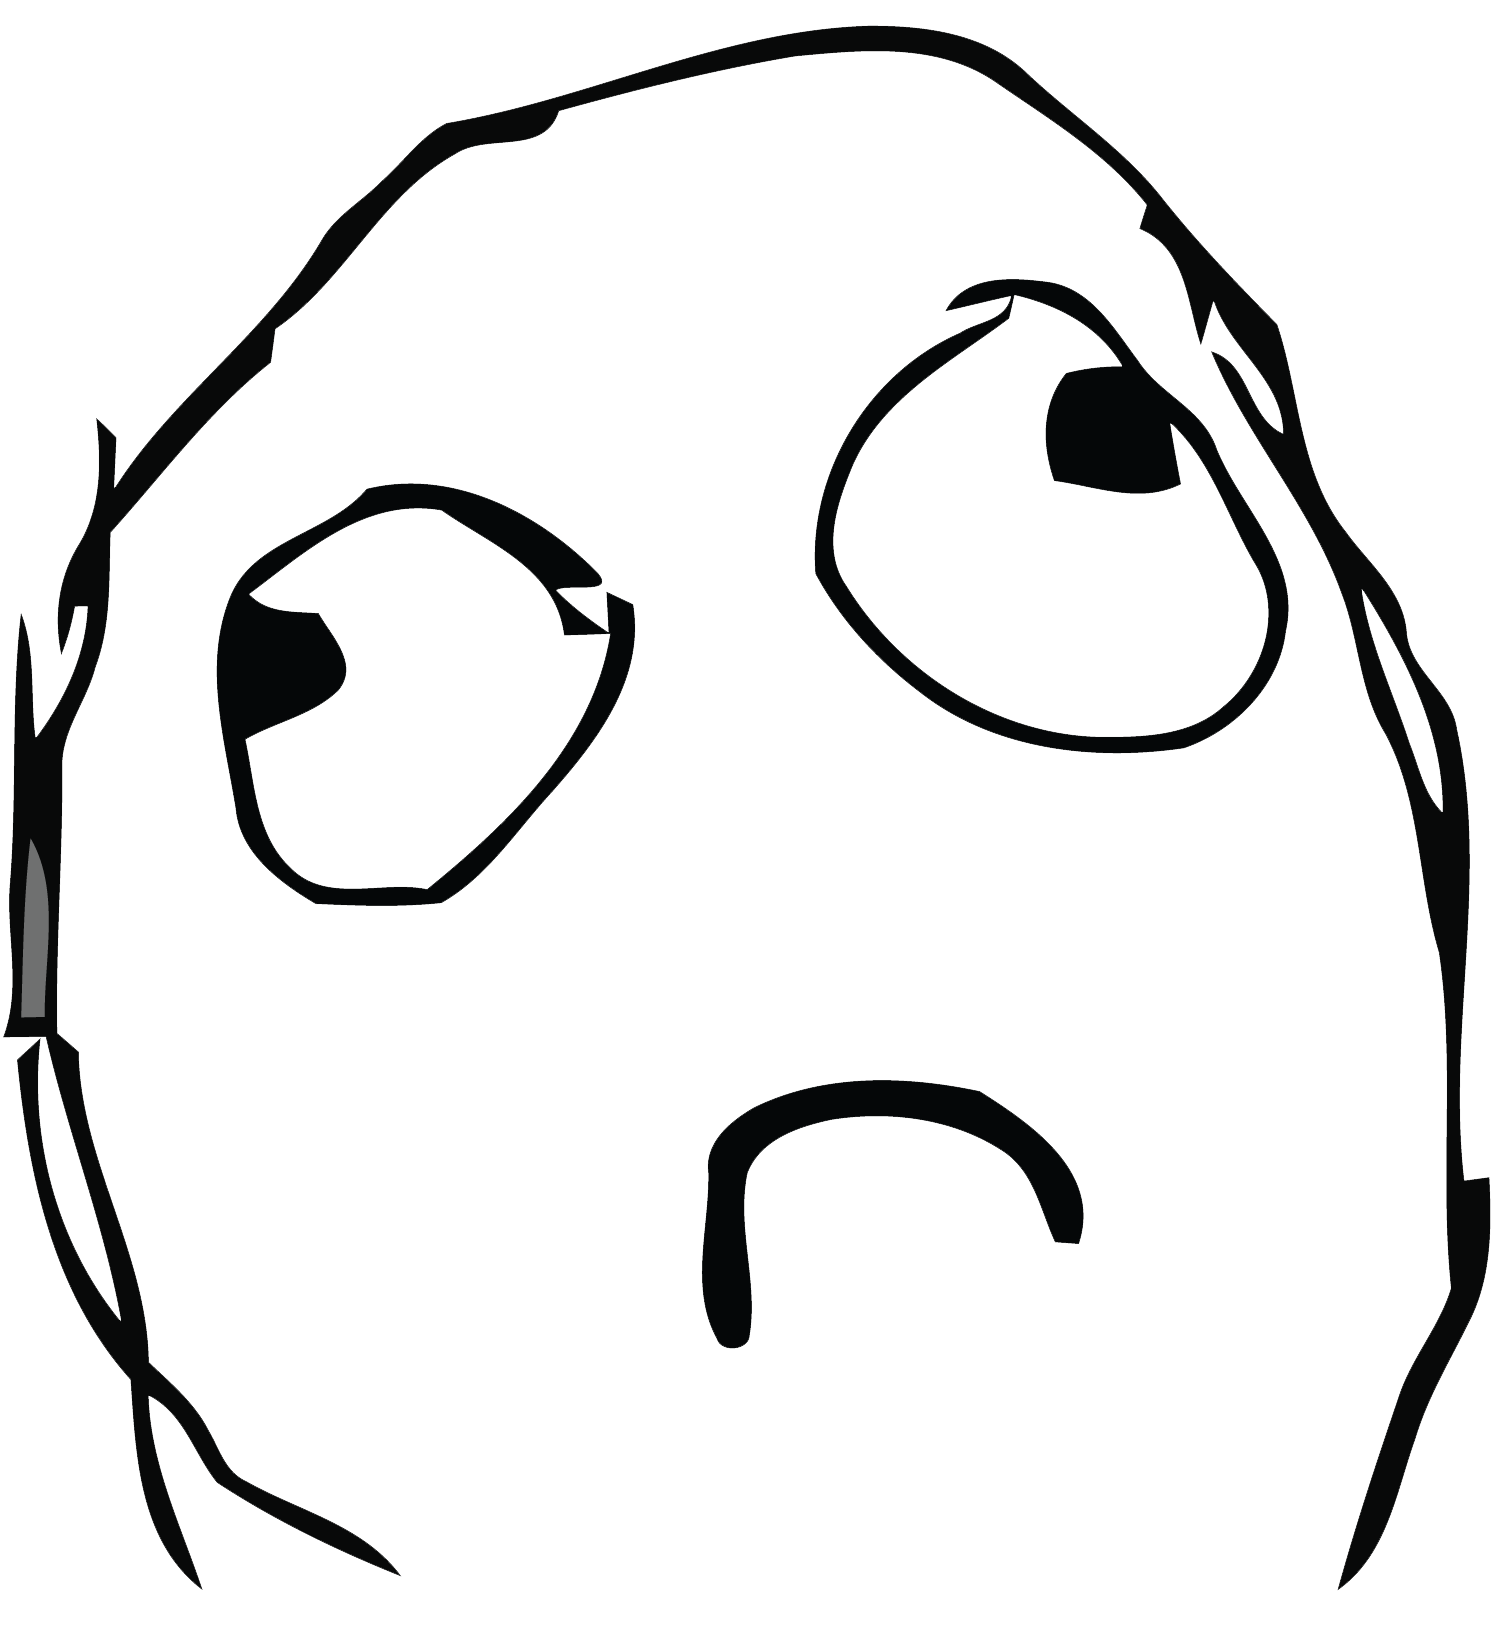 Trollface png no background. Simple sad troll face